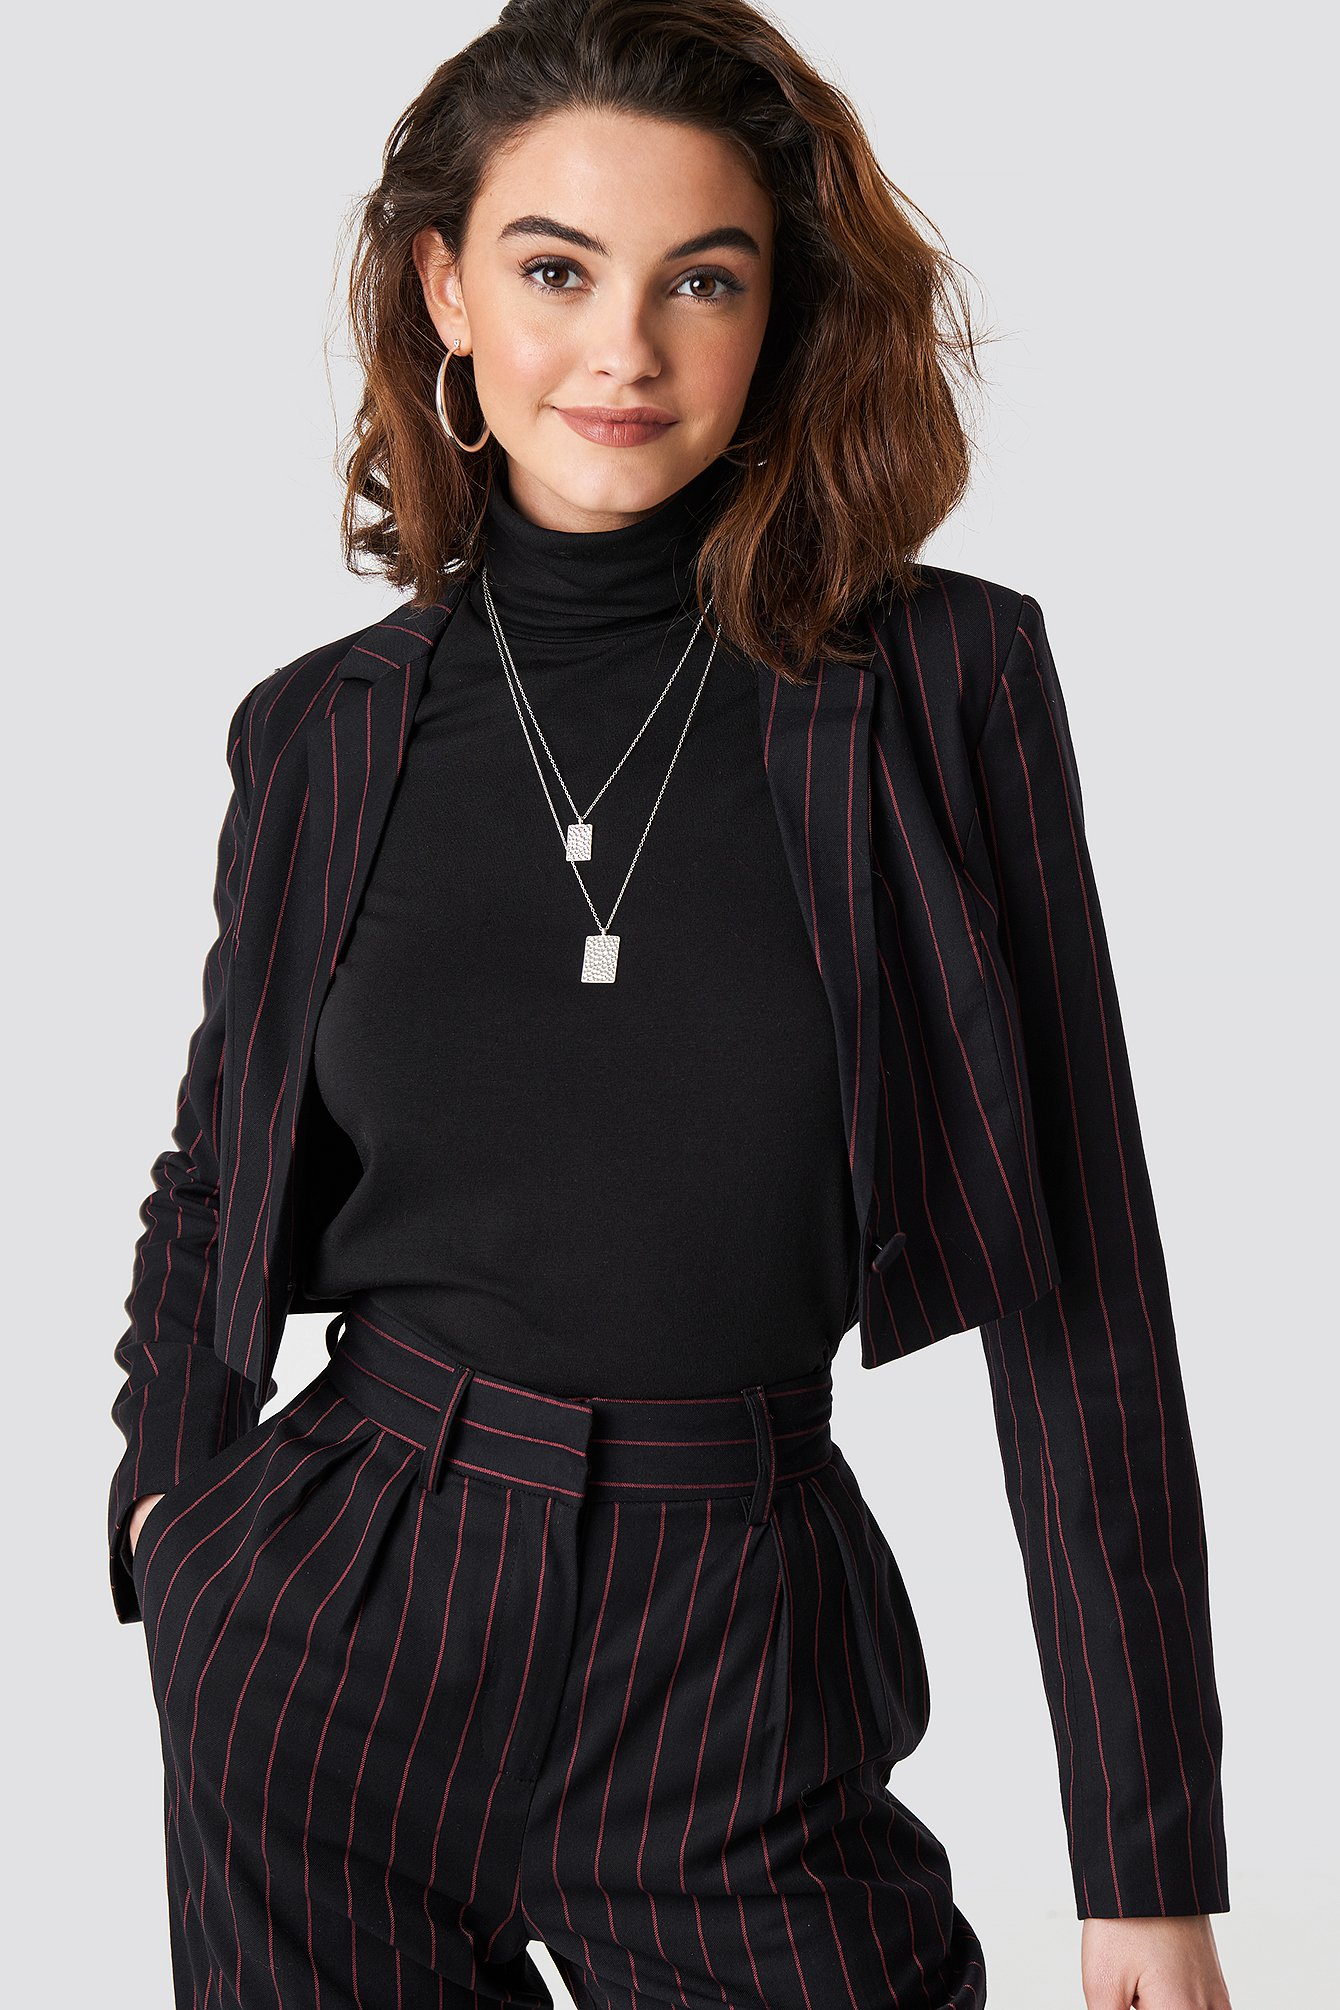 emilie briting x na-kd -  Pinstriped Cropped Blazer - Black